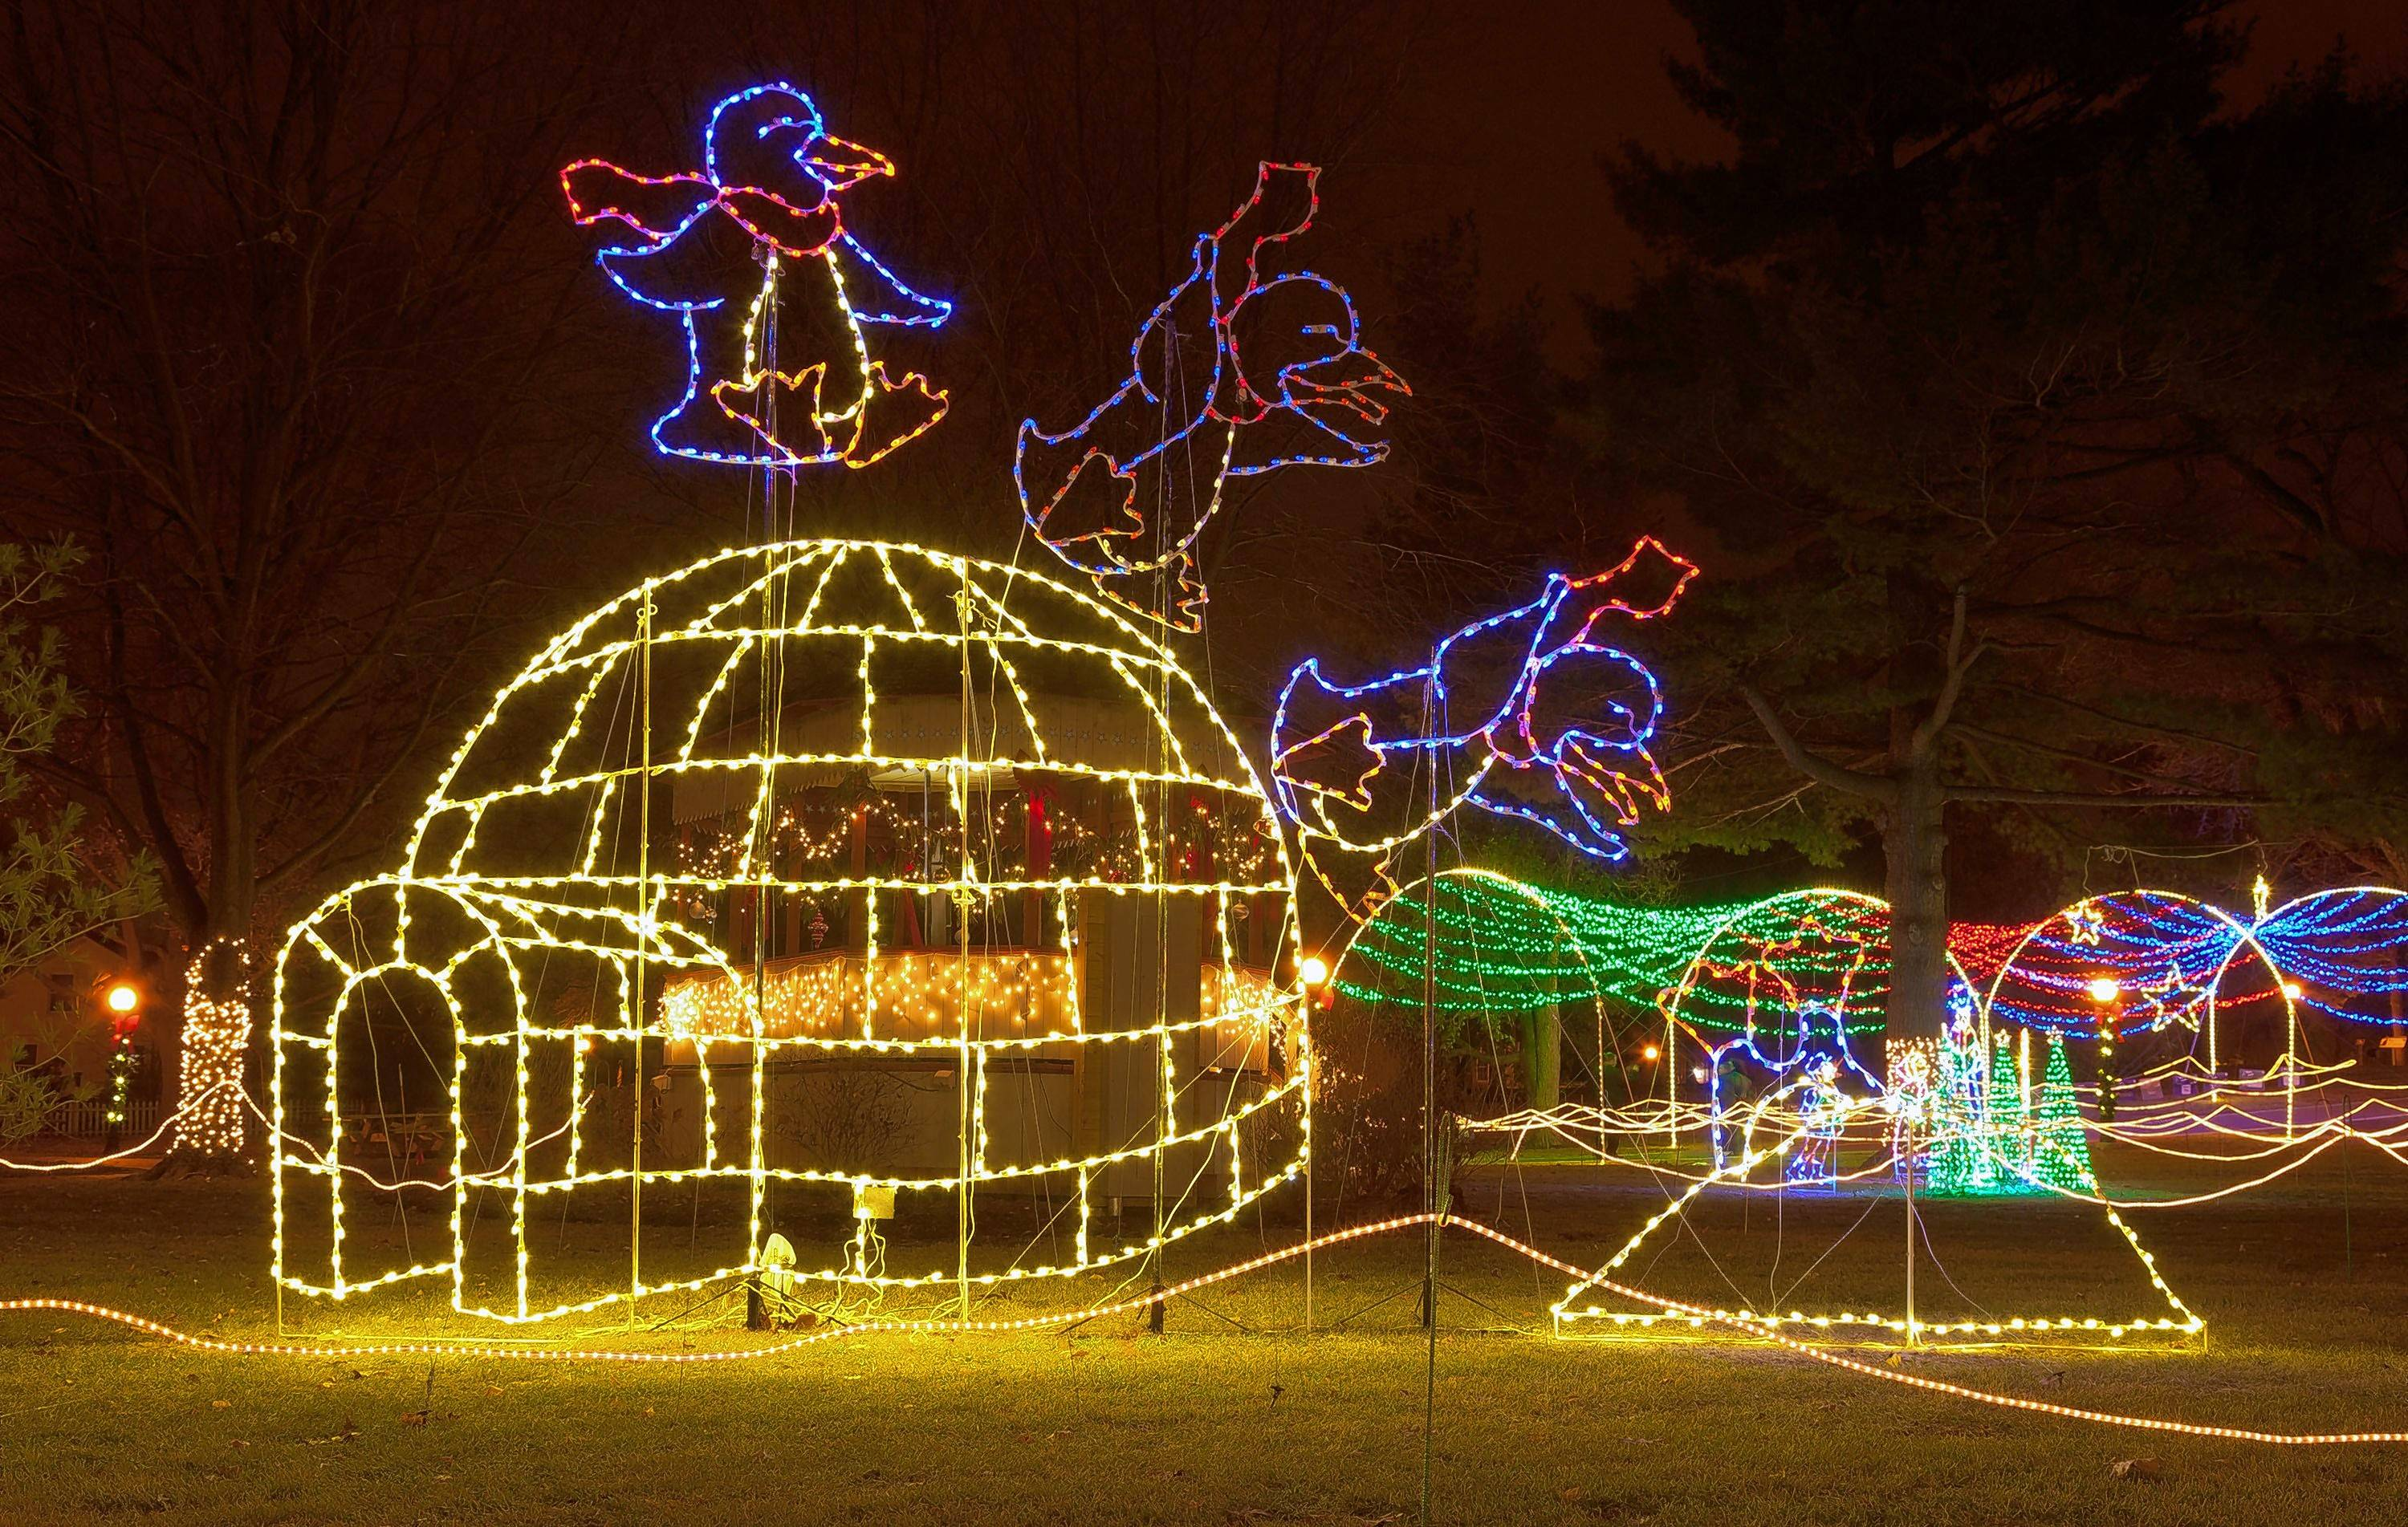 During Naper Lights, the Naper Settlement comes alive with holiday displays.